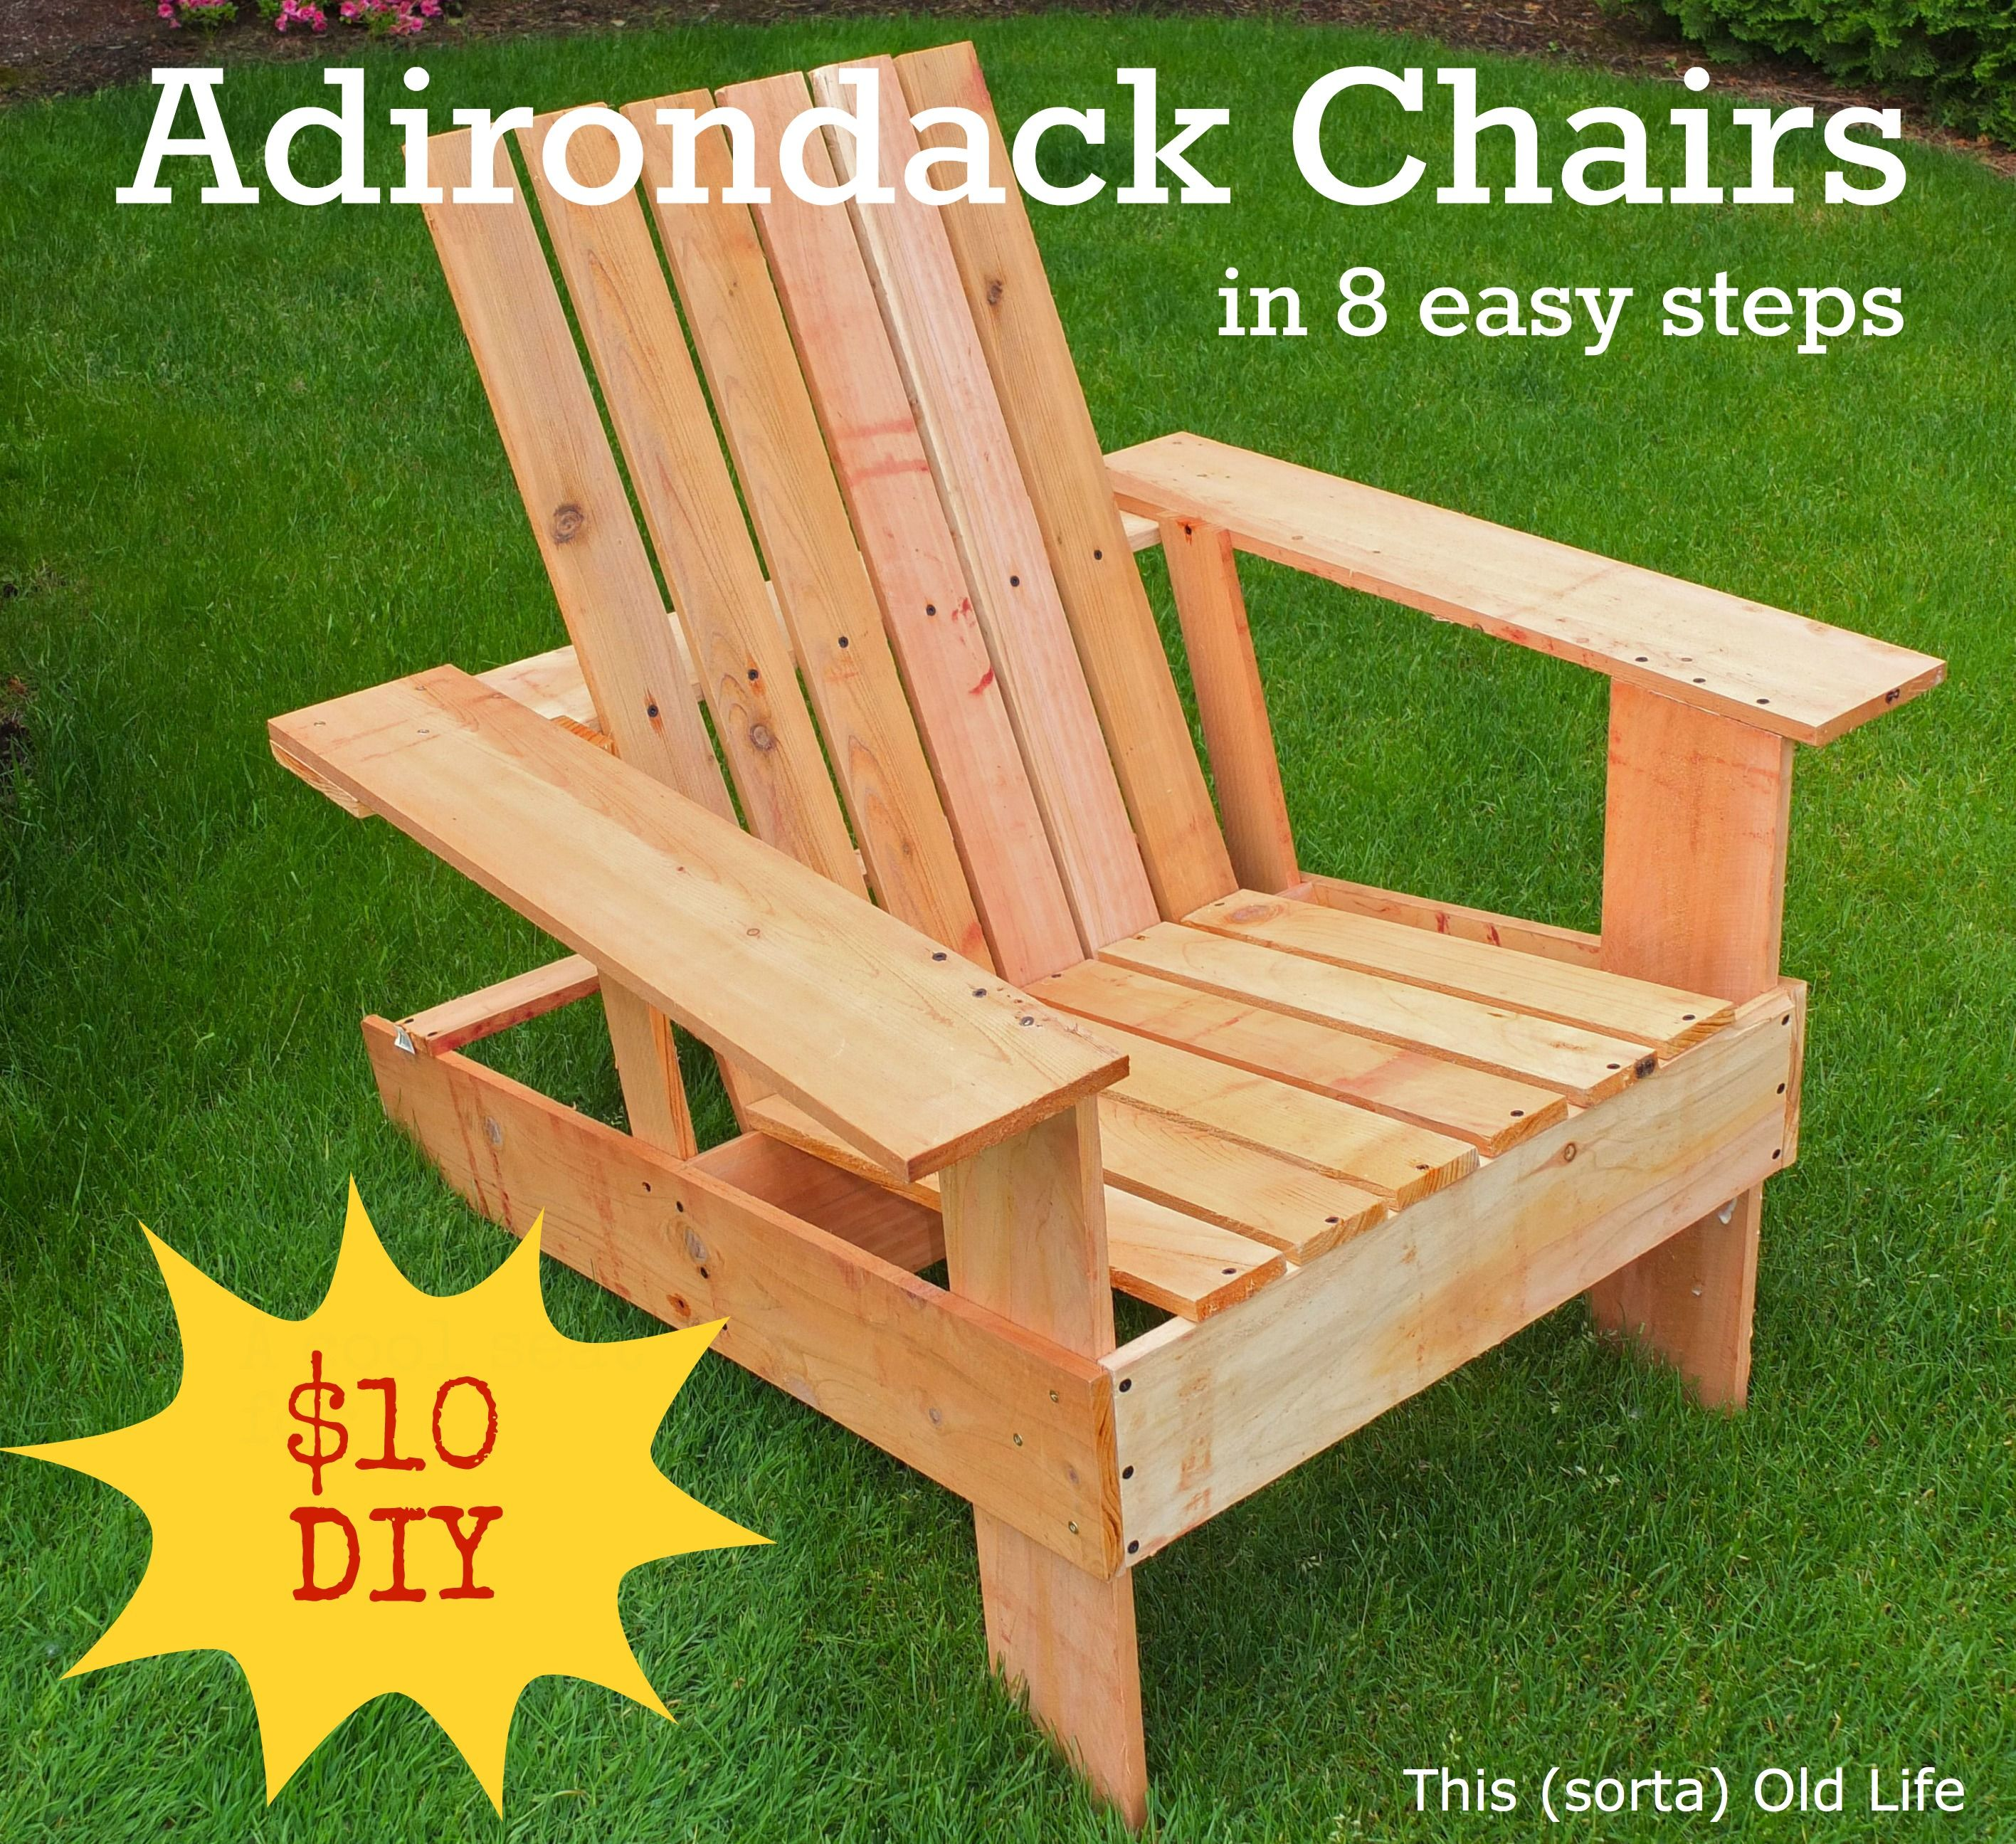 DIY Adirondack Chairs   Has Step By Step Photos And Uses Cedar Fence  Boards, Screws Glue. From This SortaOld Life